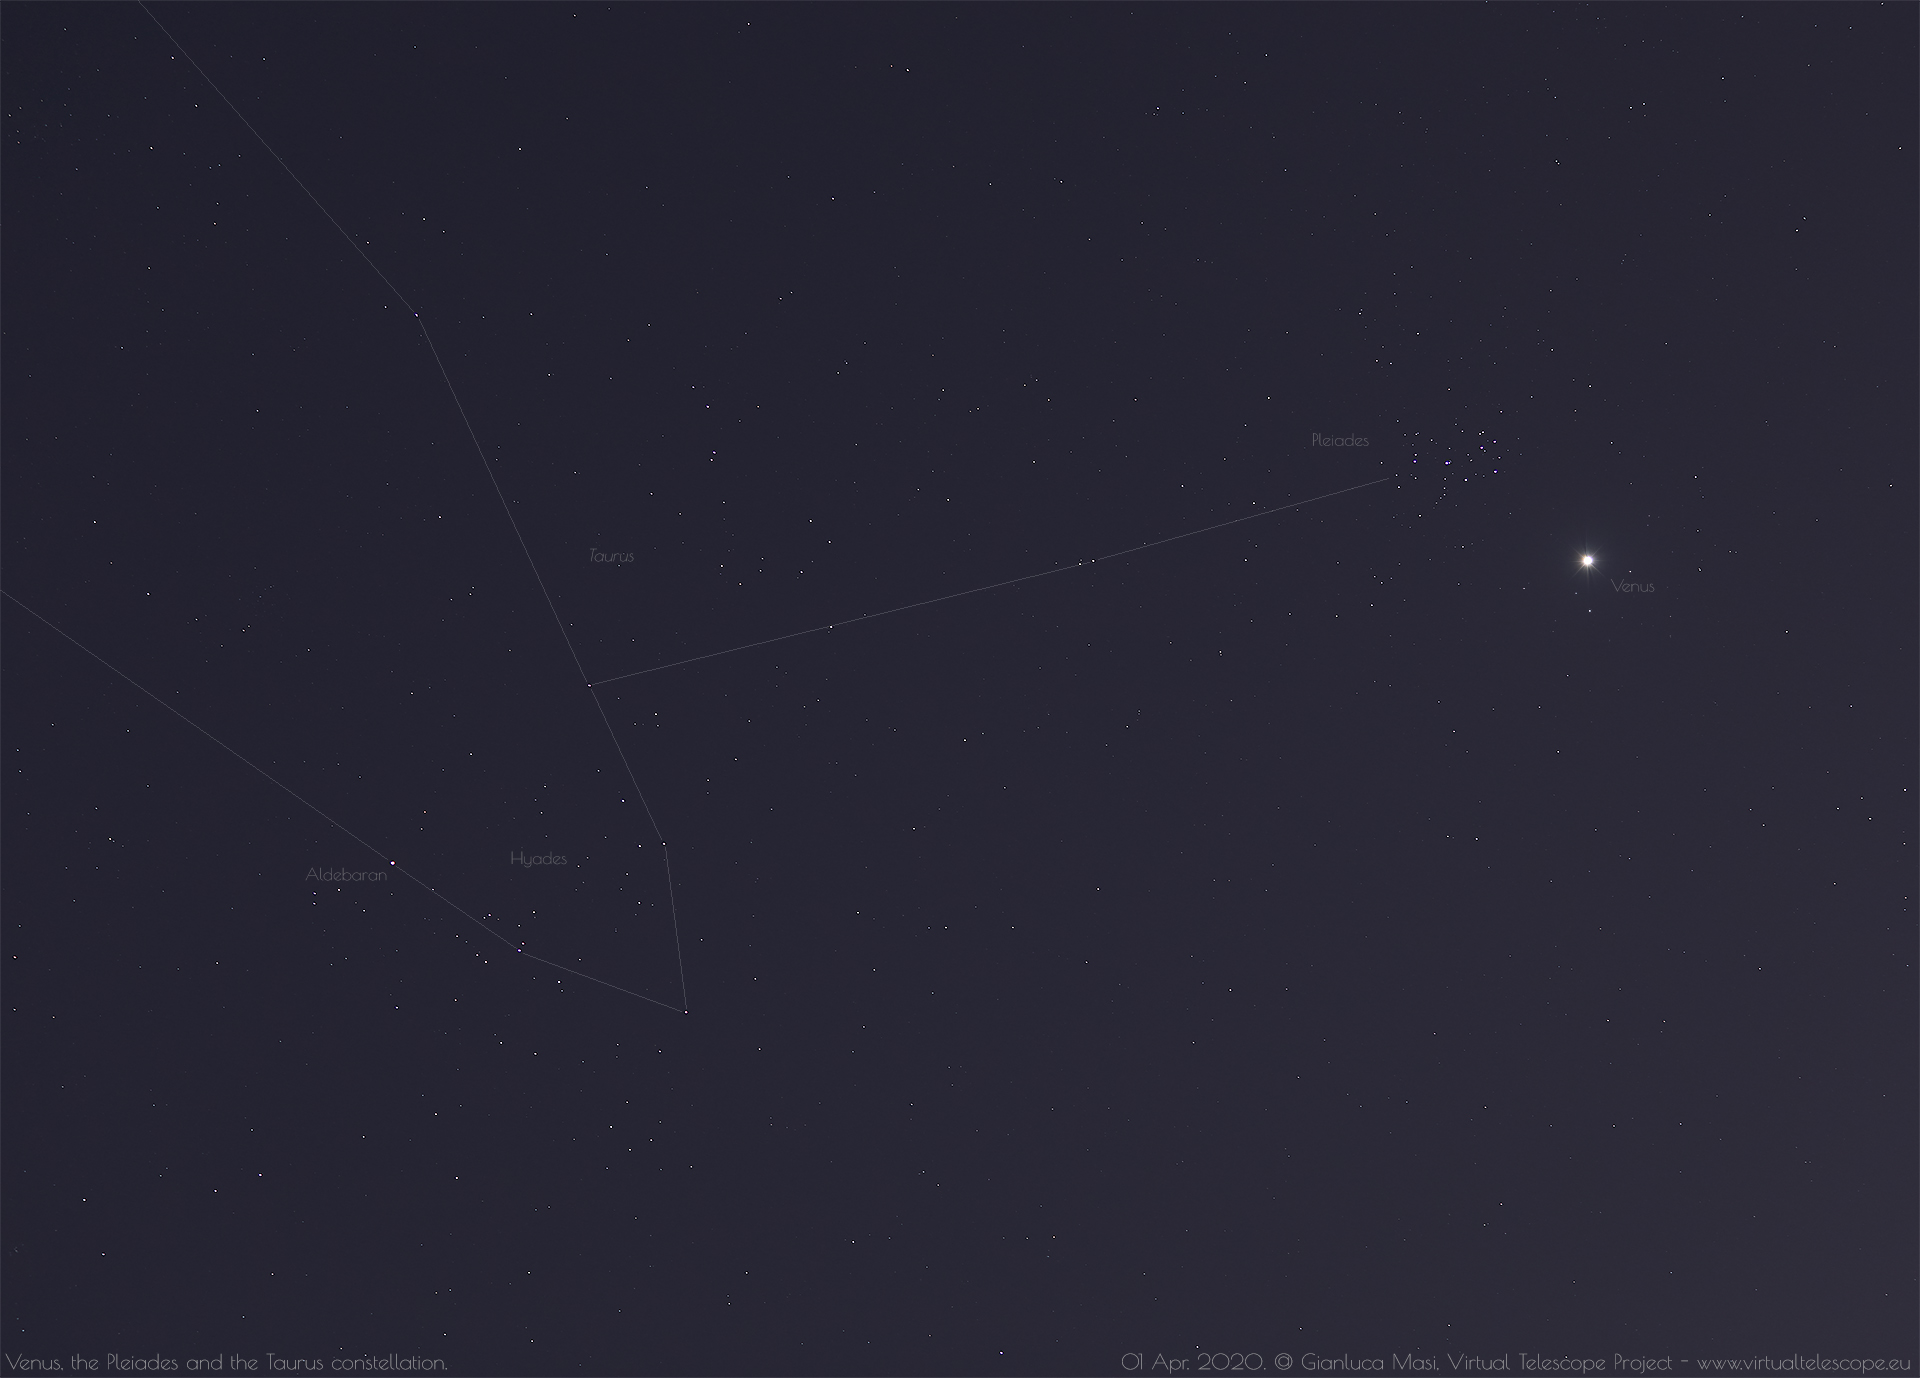 Venus, the Pleiades and part of the Taurus constellation. 1 Apr. 2020